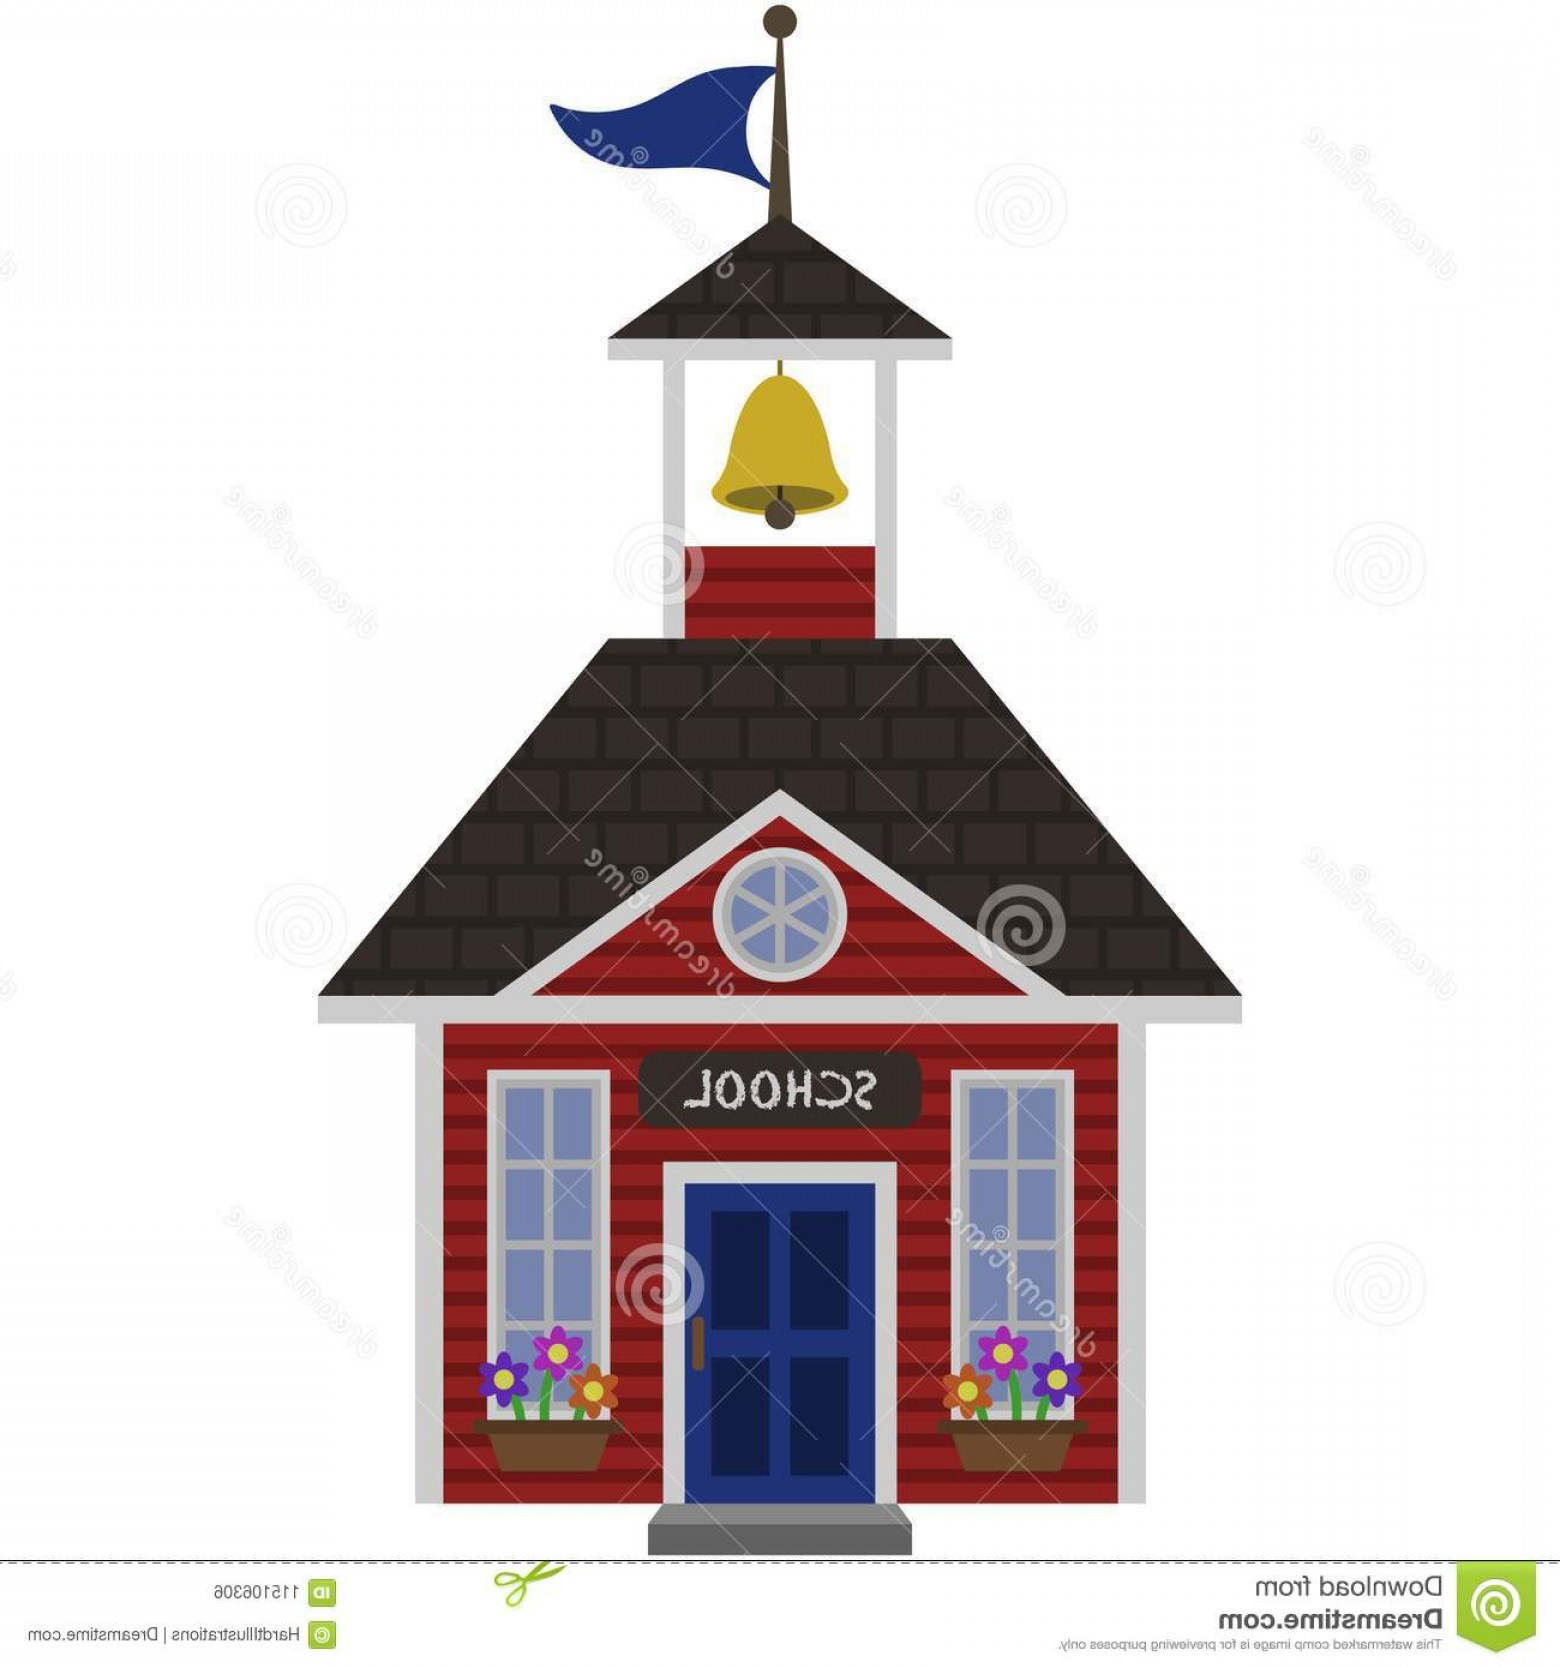 Vector Clip Art Red Schoolhouse: Red Schoolhouse Illustration Blue Door Bell Flag Isolated White Background Image